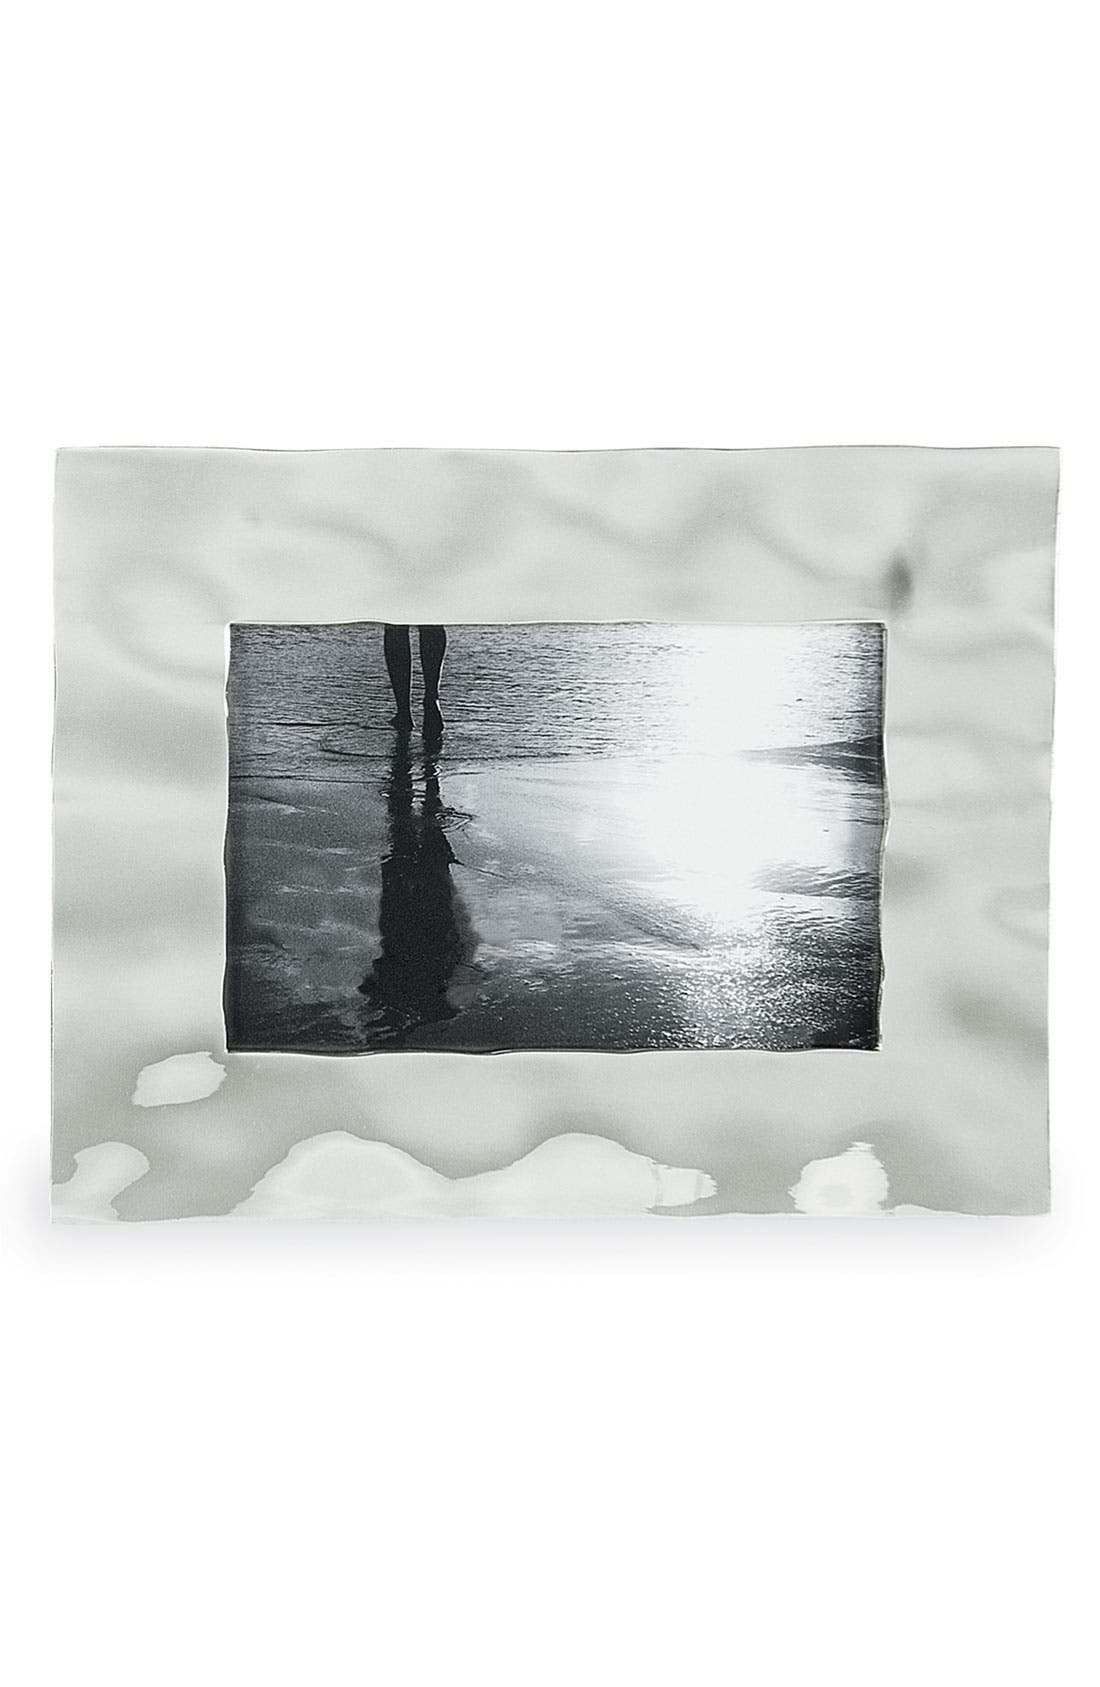 Alternate Image 1 Selected - Michael Aram 'Reflective Water' Picture Frame (5x7)